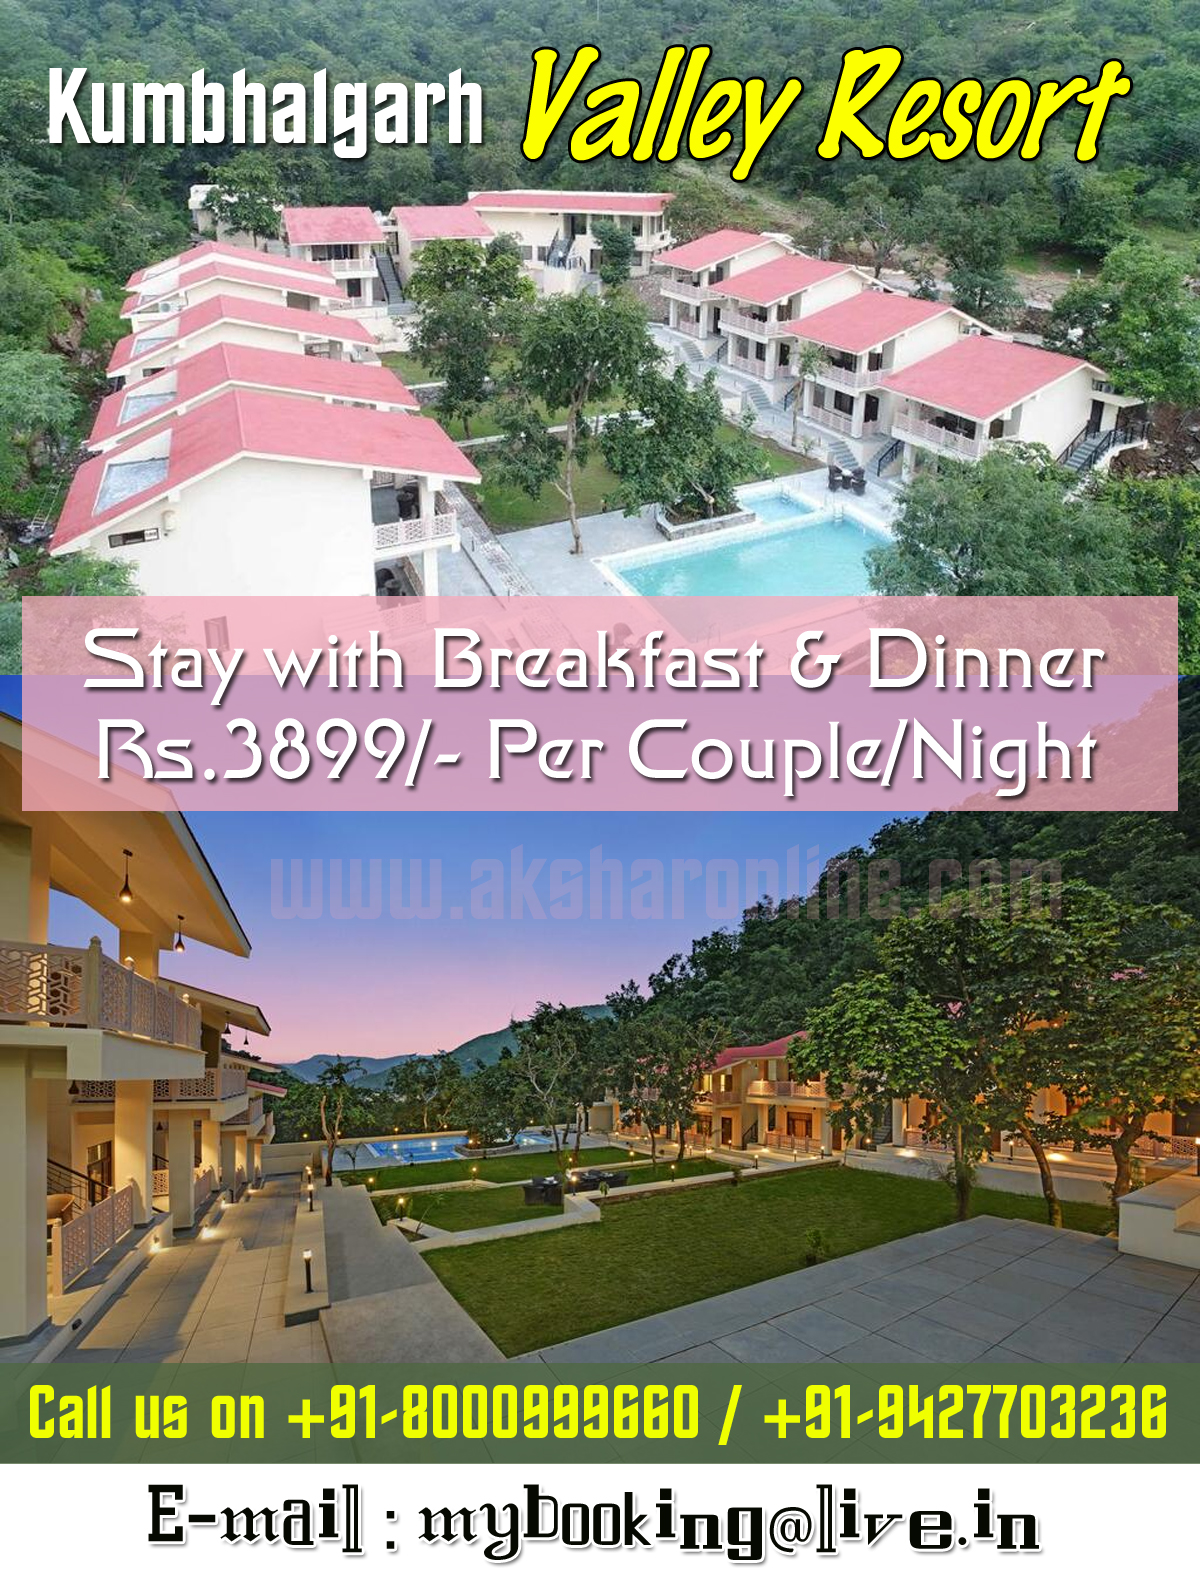 Kumbhalgarh Valley Resort - Located in Kumbhalgarh, a 14-minute walk from Kumbalgarh Fort, Kumbhalgarh Valley Resort has accommodations with a restaurant, free private parking, a garden and a terrace. Featuring family rooms, this property also provides guests with an outdoor pool. The property provides a 24-hour front desk, room service and currency exchange for guests.  The resort offers a continental or buffet breakfast.  The nearest airport is Maharana Pratap Airport, 107.8 km from Kumbhalgarh Valley Resort.  Domestic and International Air Ticket Booking, Bus Ticket, Railway Ticket Booking, Hotel Booking, Tour Package, Western Union Money Transfer Services, Transfast Money Transfer Services, Domestic Money Transfer, Wire Transfer Services, Forex Card, Traveller Cheque/DD, Travel Insurance, Passport Assistance, Car Rental, Life Insurance, Health Insurance, Vehicle Insurance & more... Call us on 8000999660, 9427703236